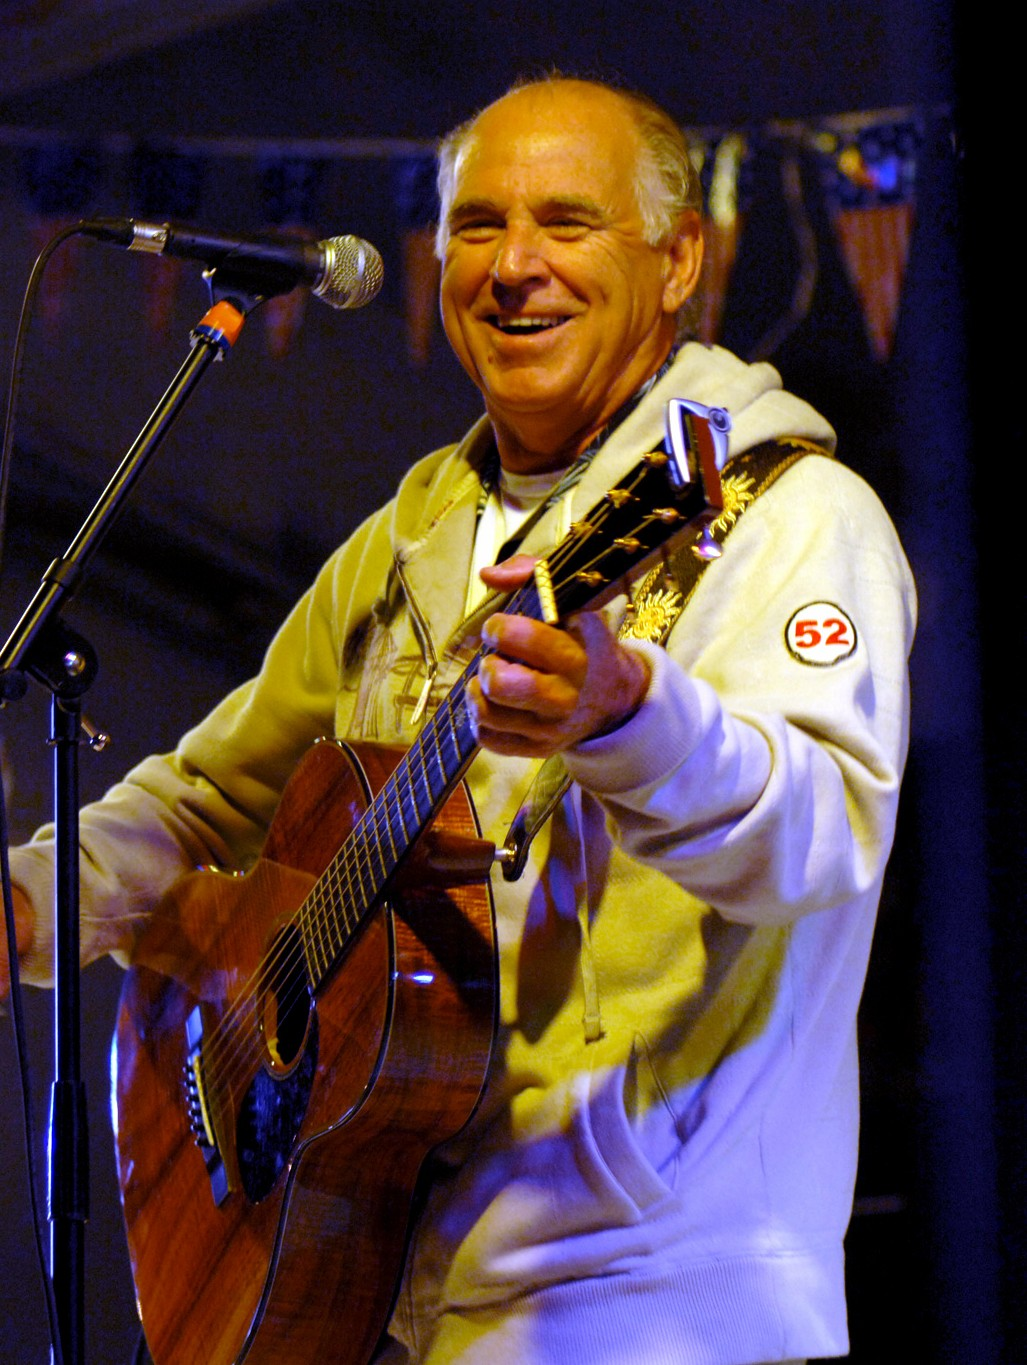 jimmy buffett Buffettnews - jimmy buffett news, tour dates, set lists, song lyrics, discussion forum, timeline, and photo gallery.